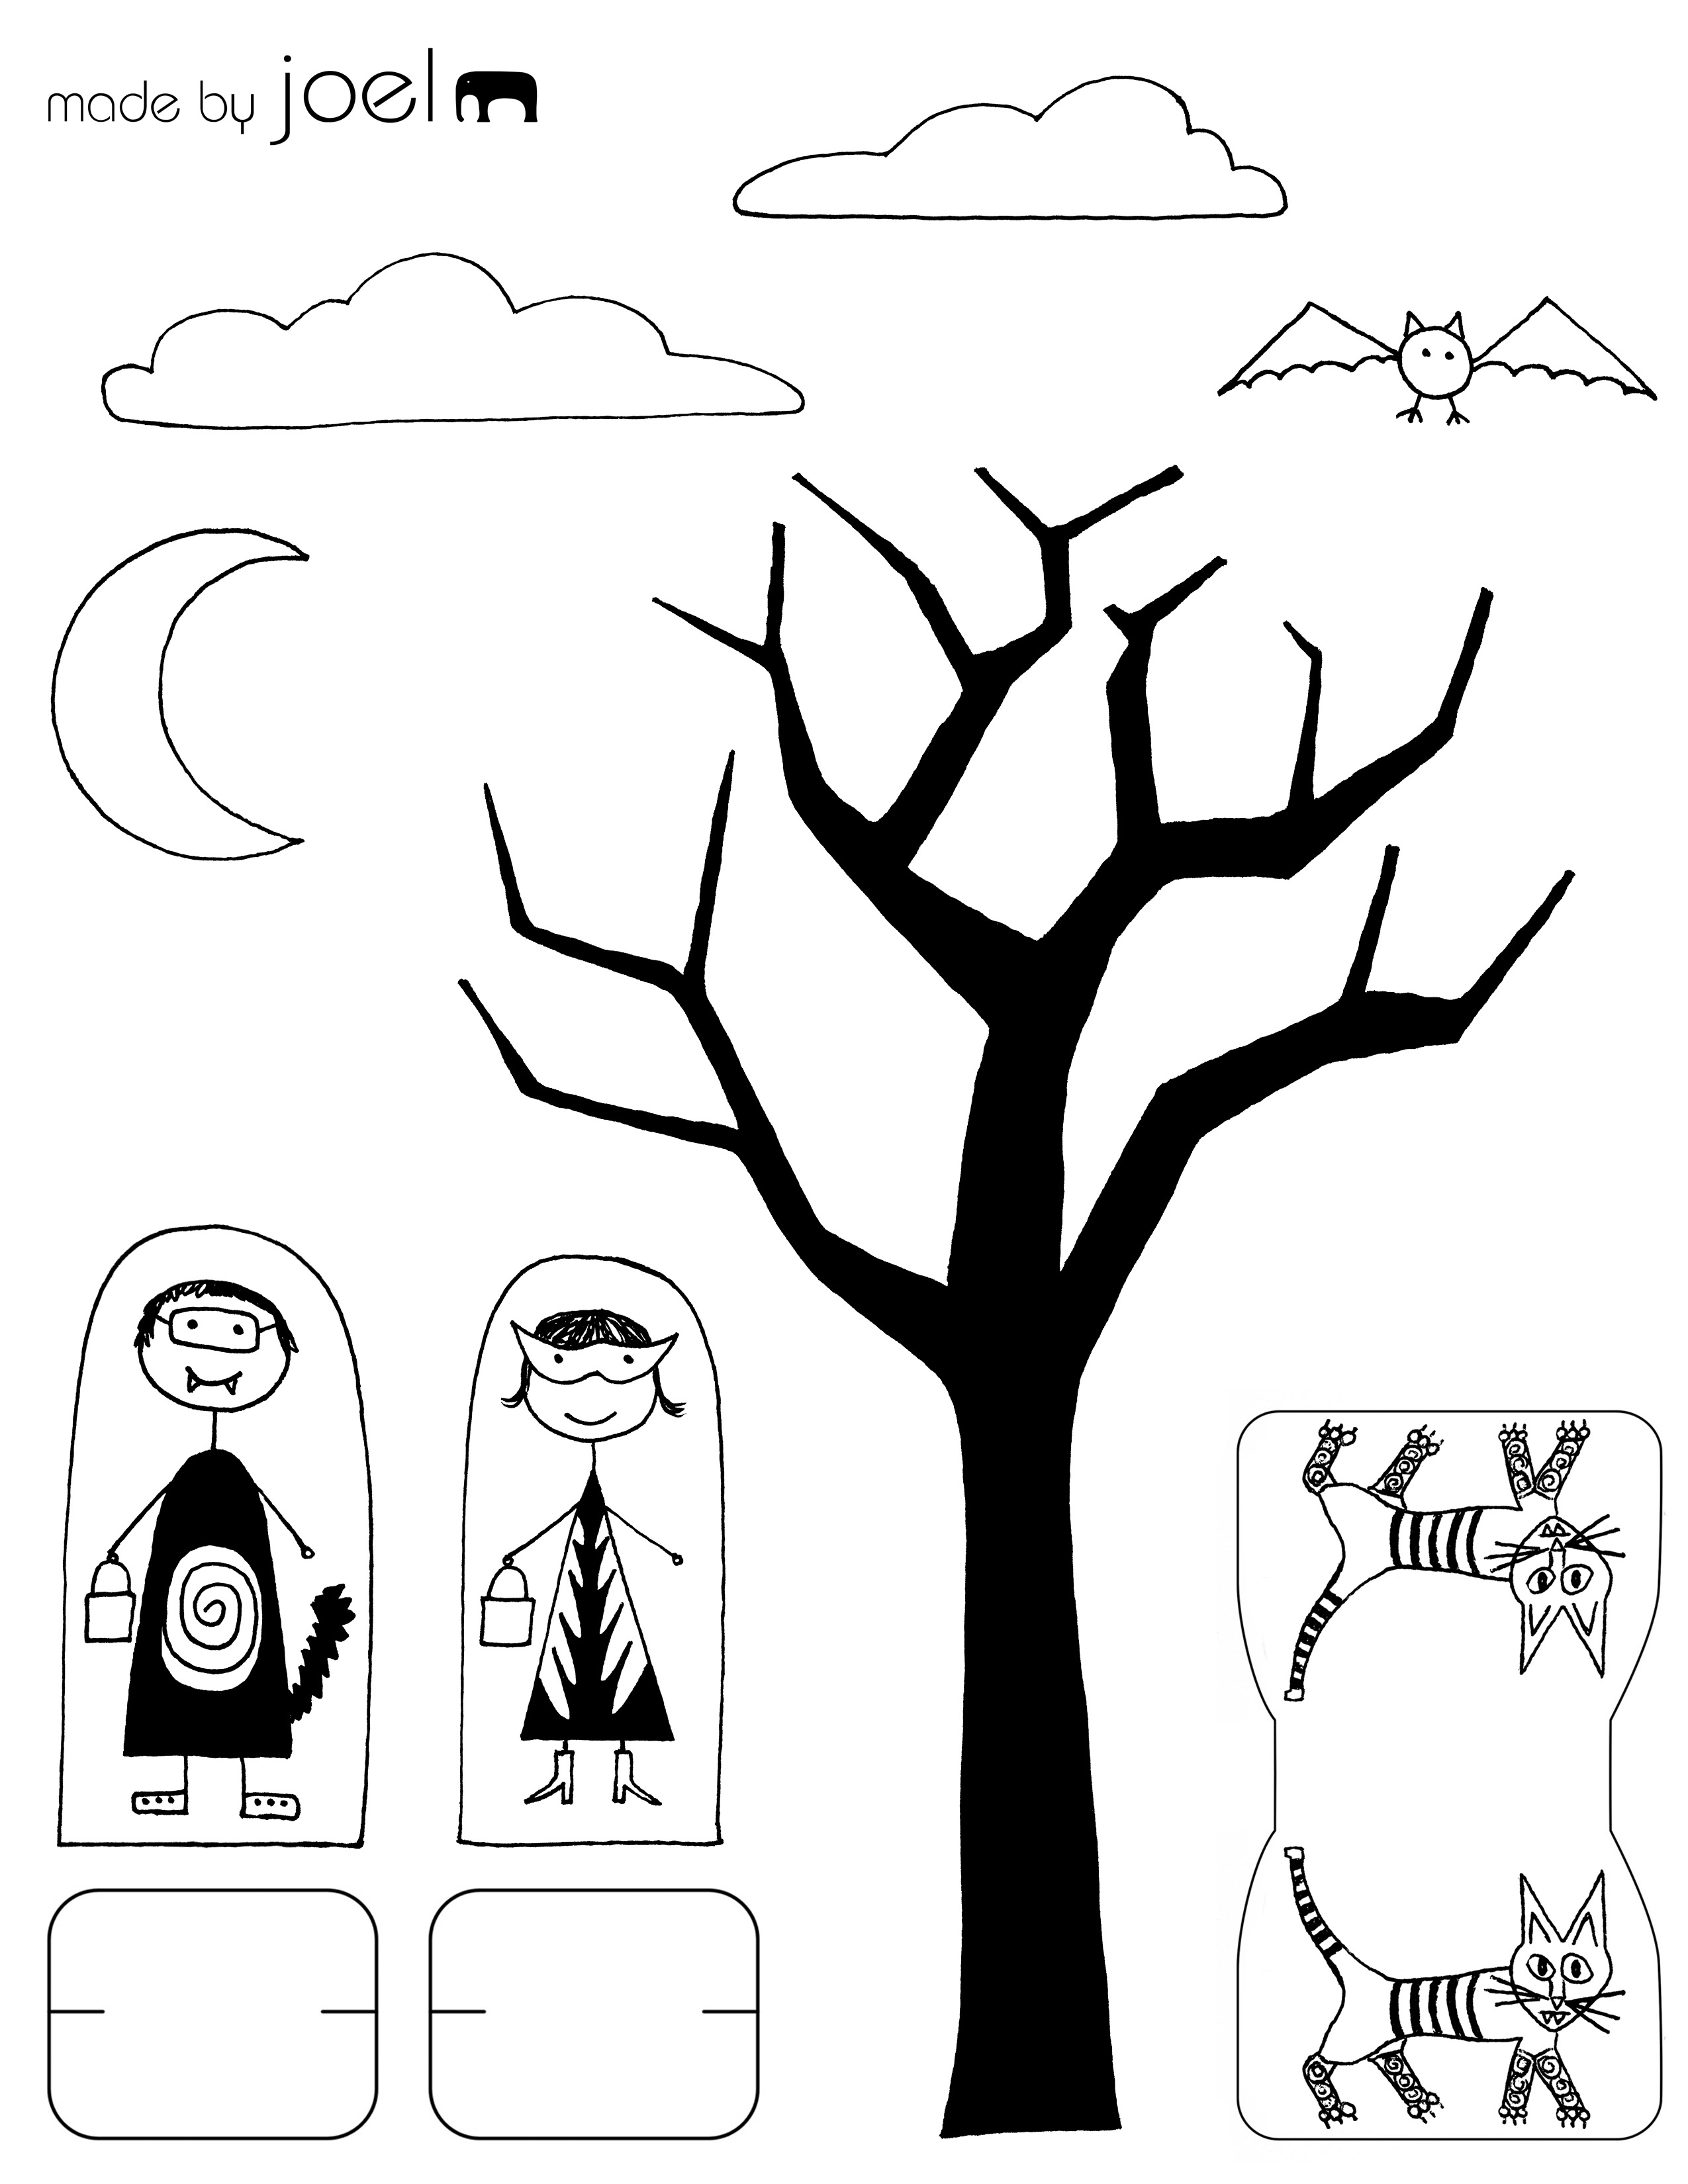 Madejoel » Madejoel Trick Or Treat Paper City Scene Printout - Free Printable Halloween Paper Crafts